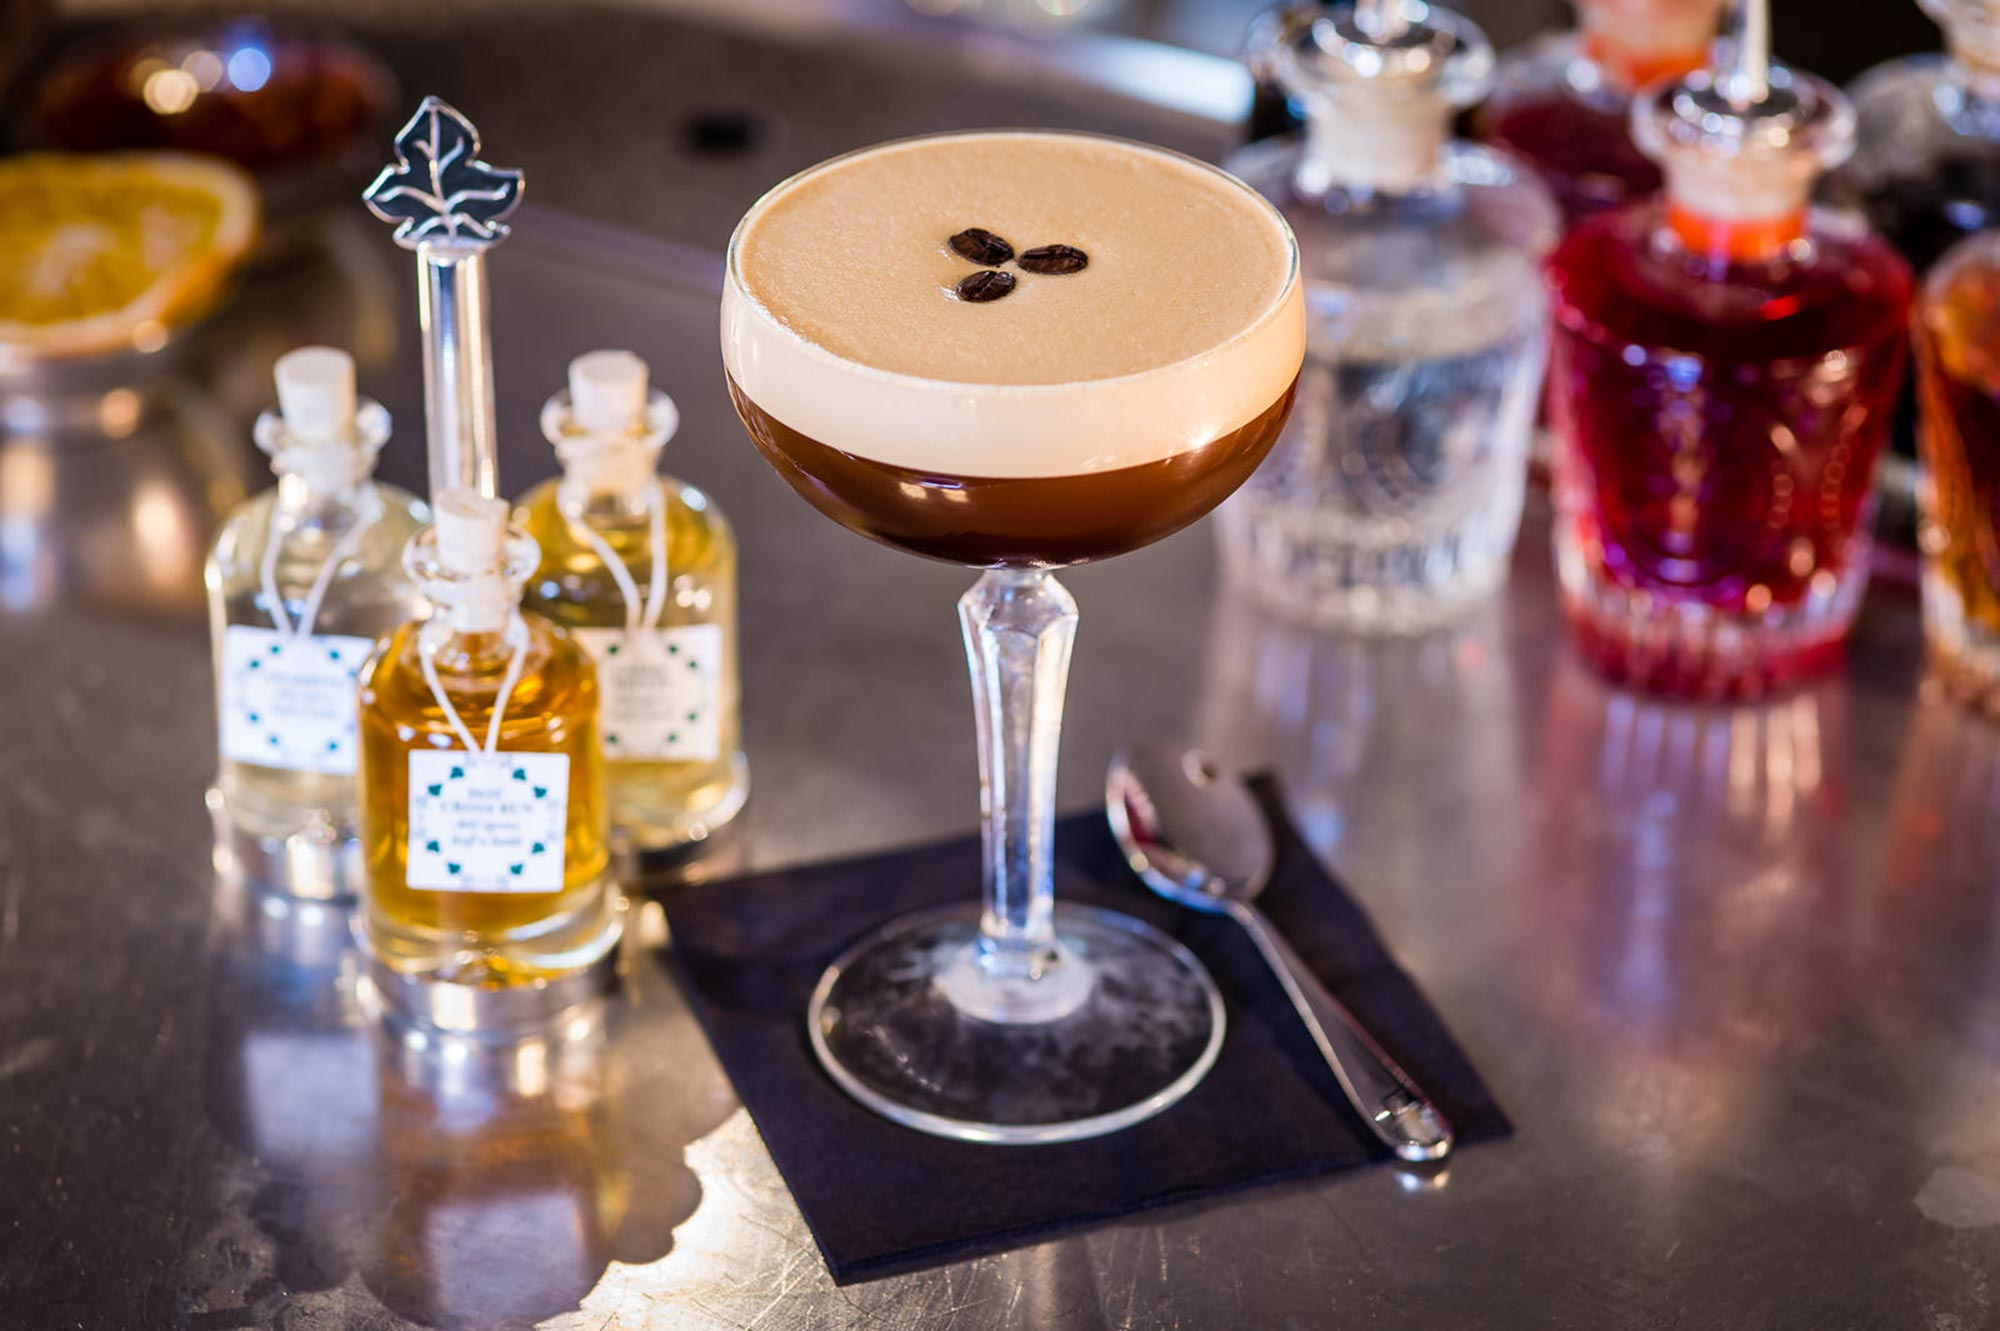 The Ivy Harrogate Brasserie - The Ivy Collection Espresso Martini and Infusions - The Ivy Harrogate